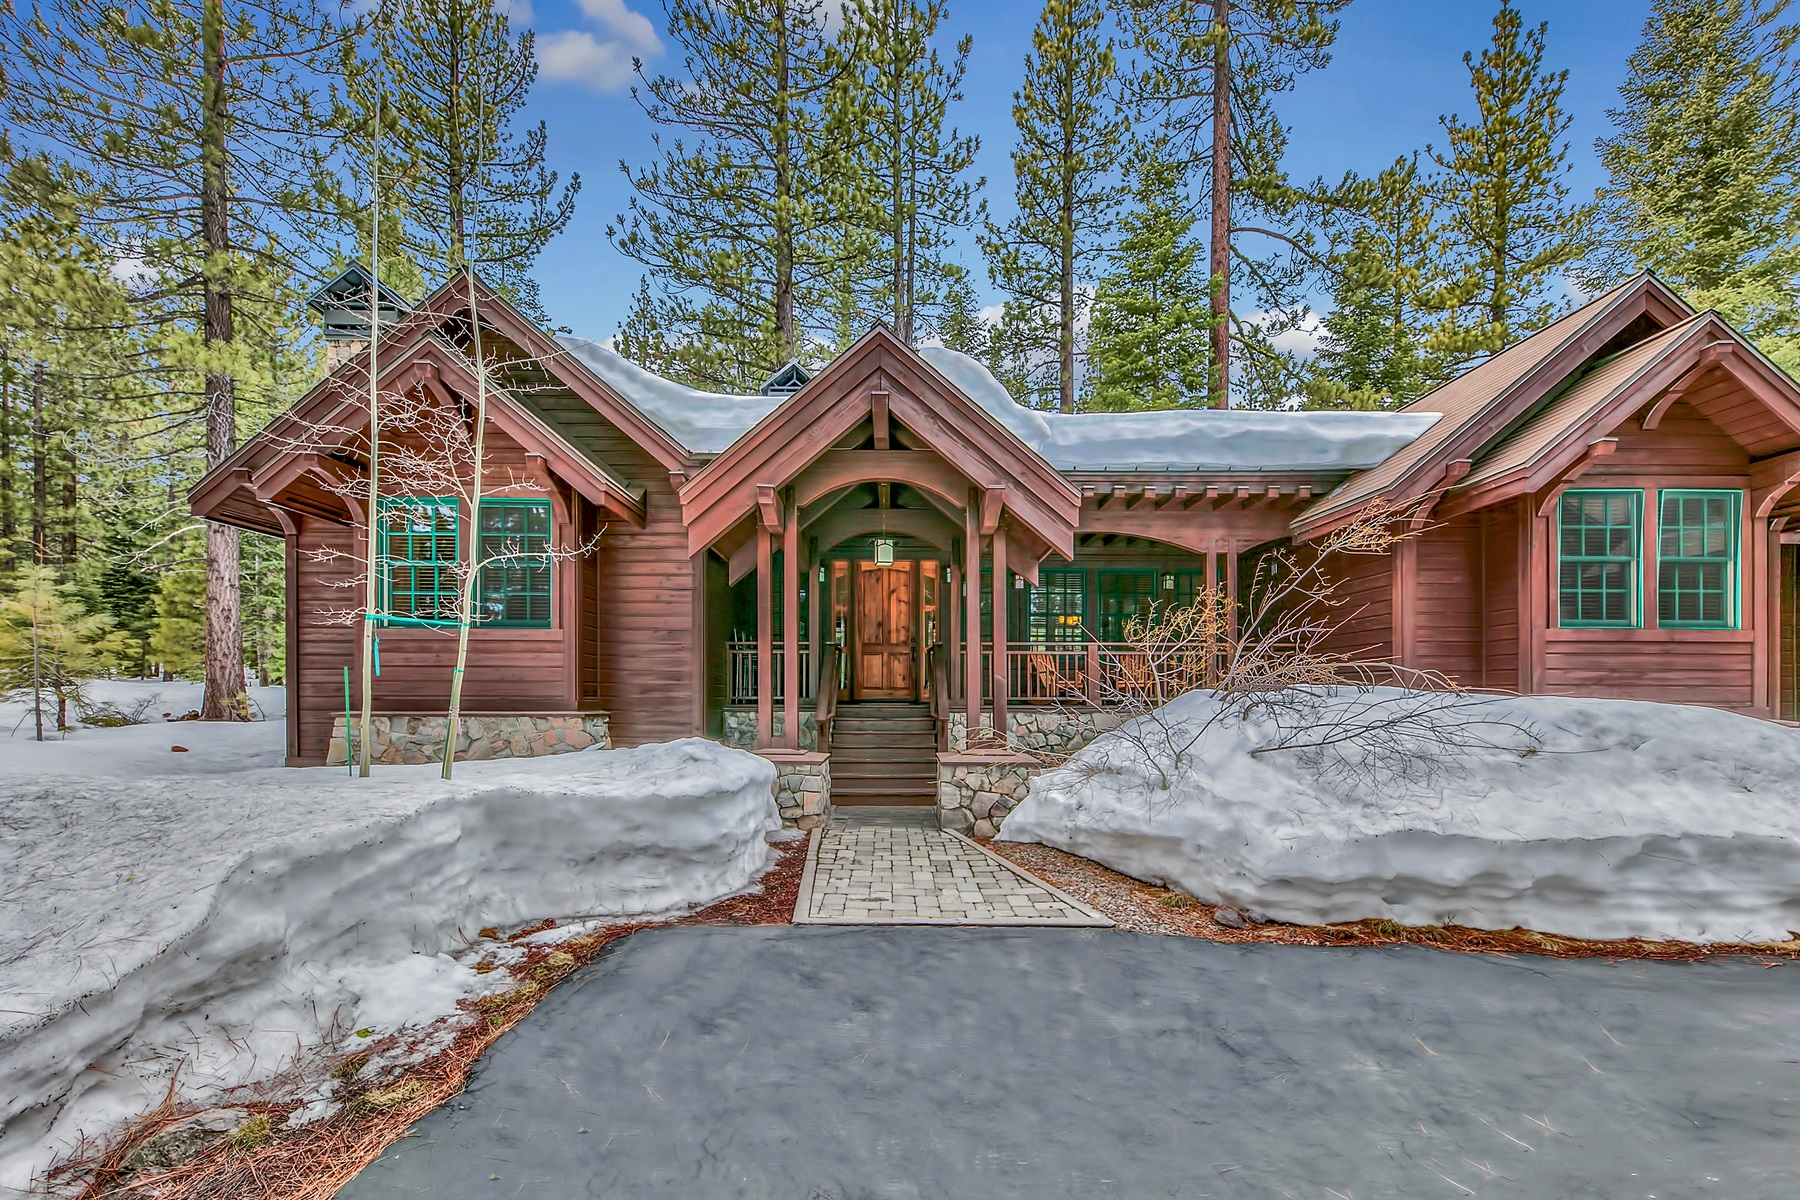 Single Family Home for Active at 8441 Lahontan Drive, Truckee, CA 8441 Lahontan Drive Truckee, California 96161 United States